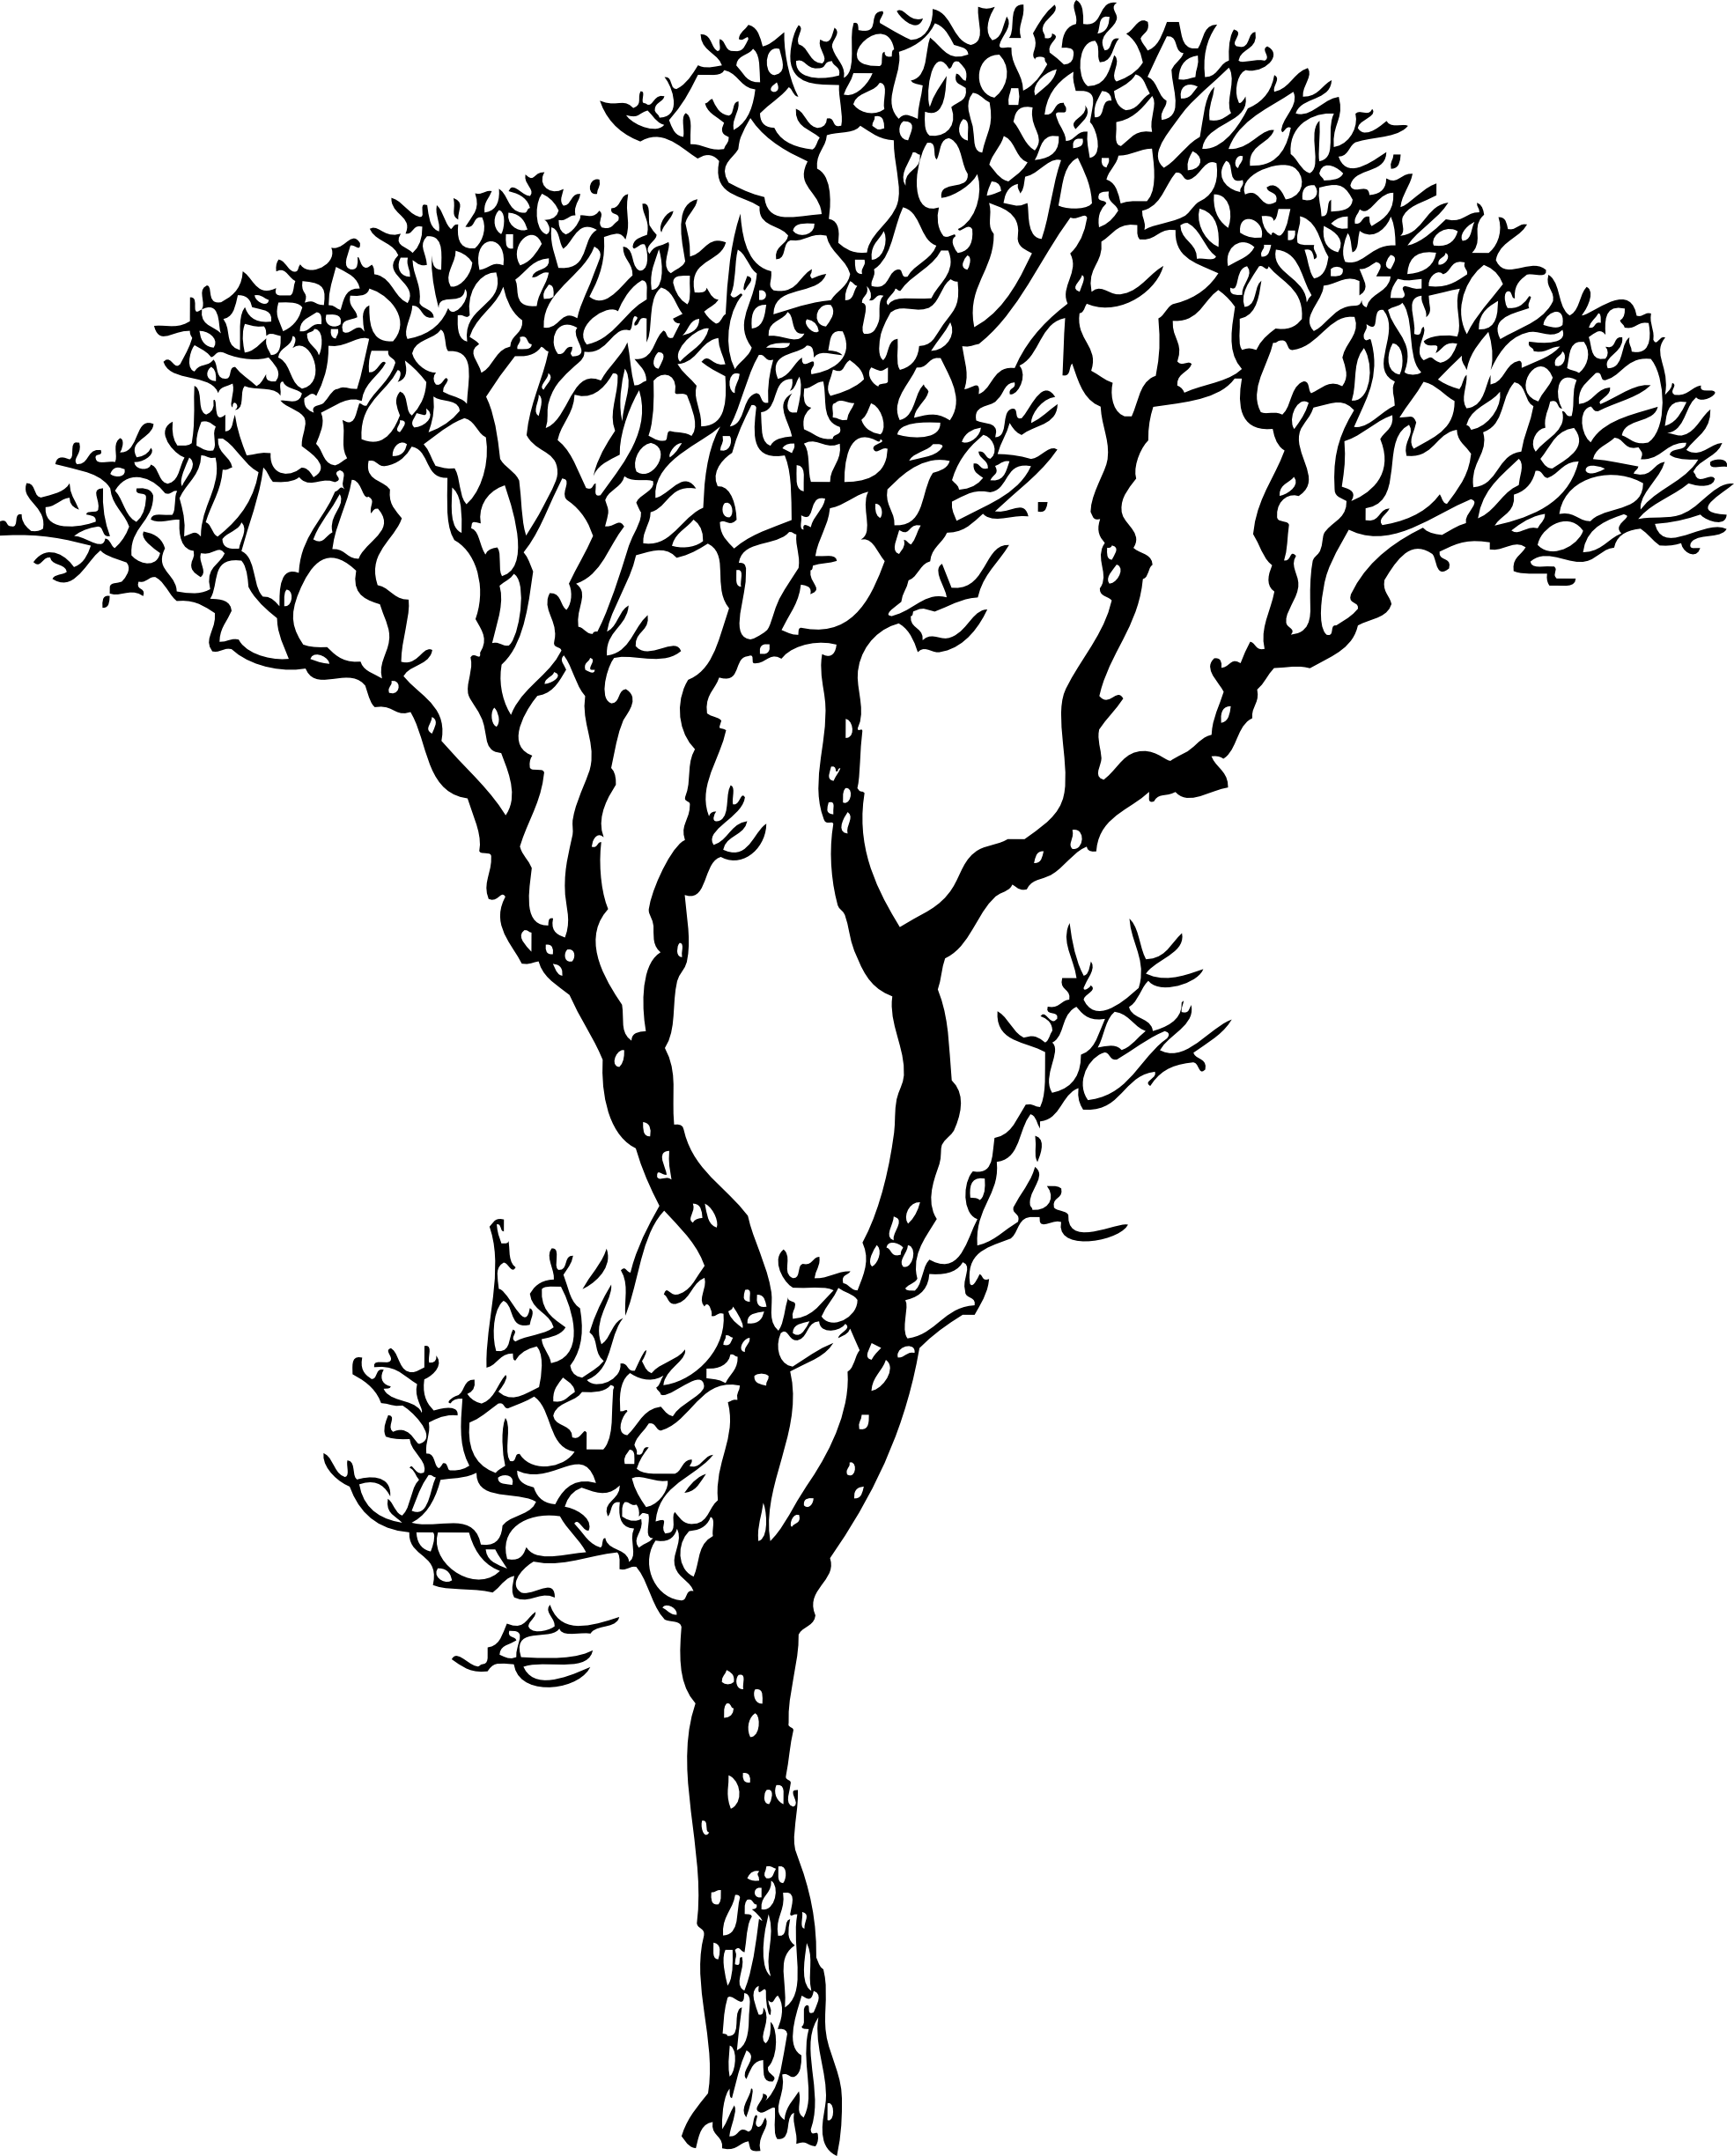 Tall clipart black and white. Bare tree line art